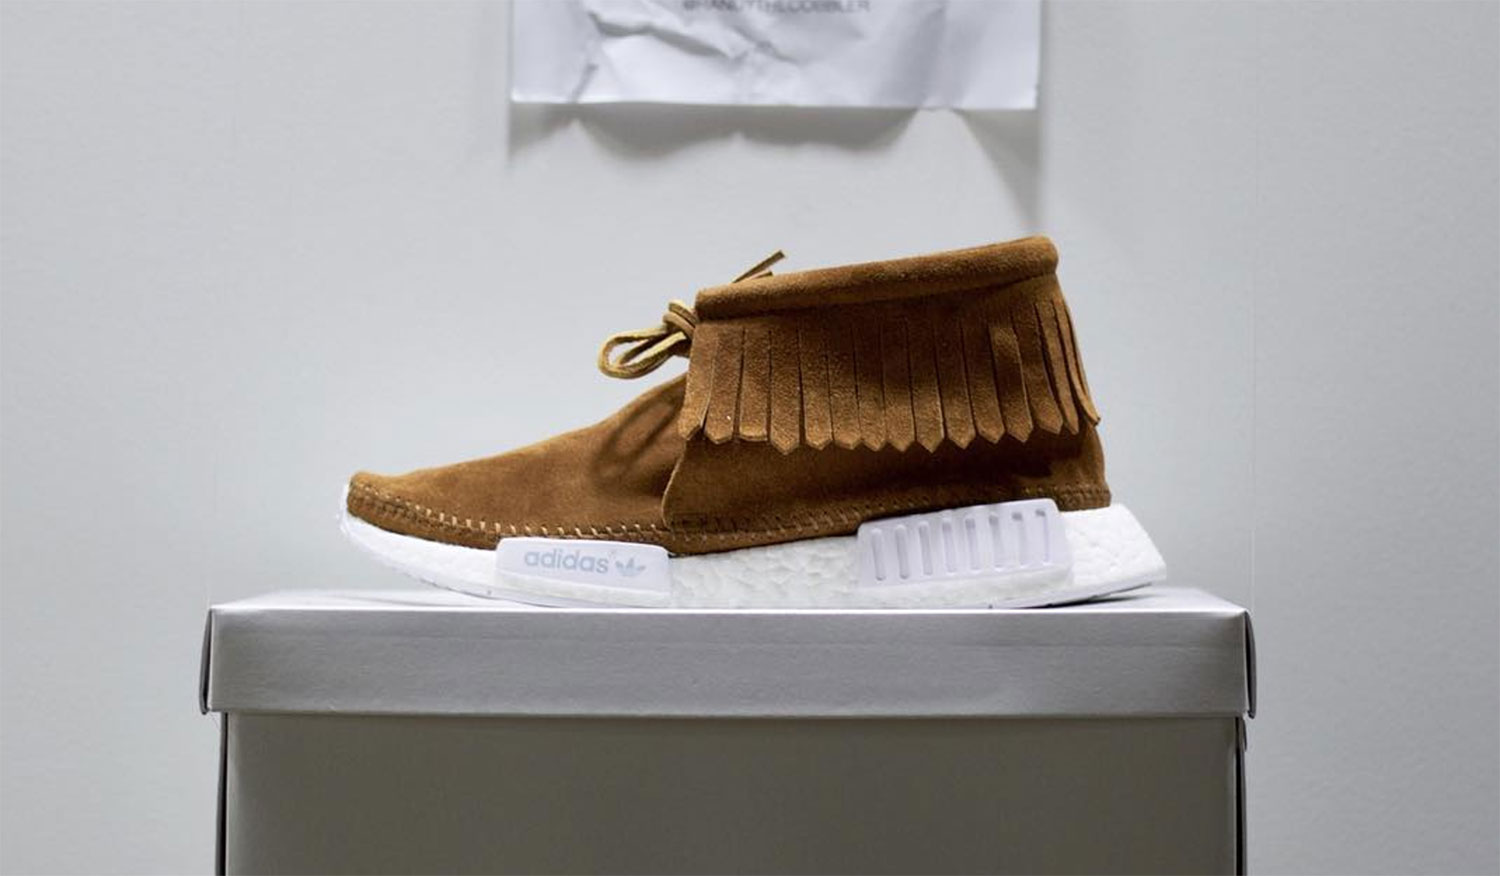 Adidas NMD Gets A Moccasin Update For FW16